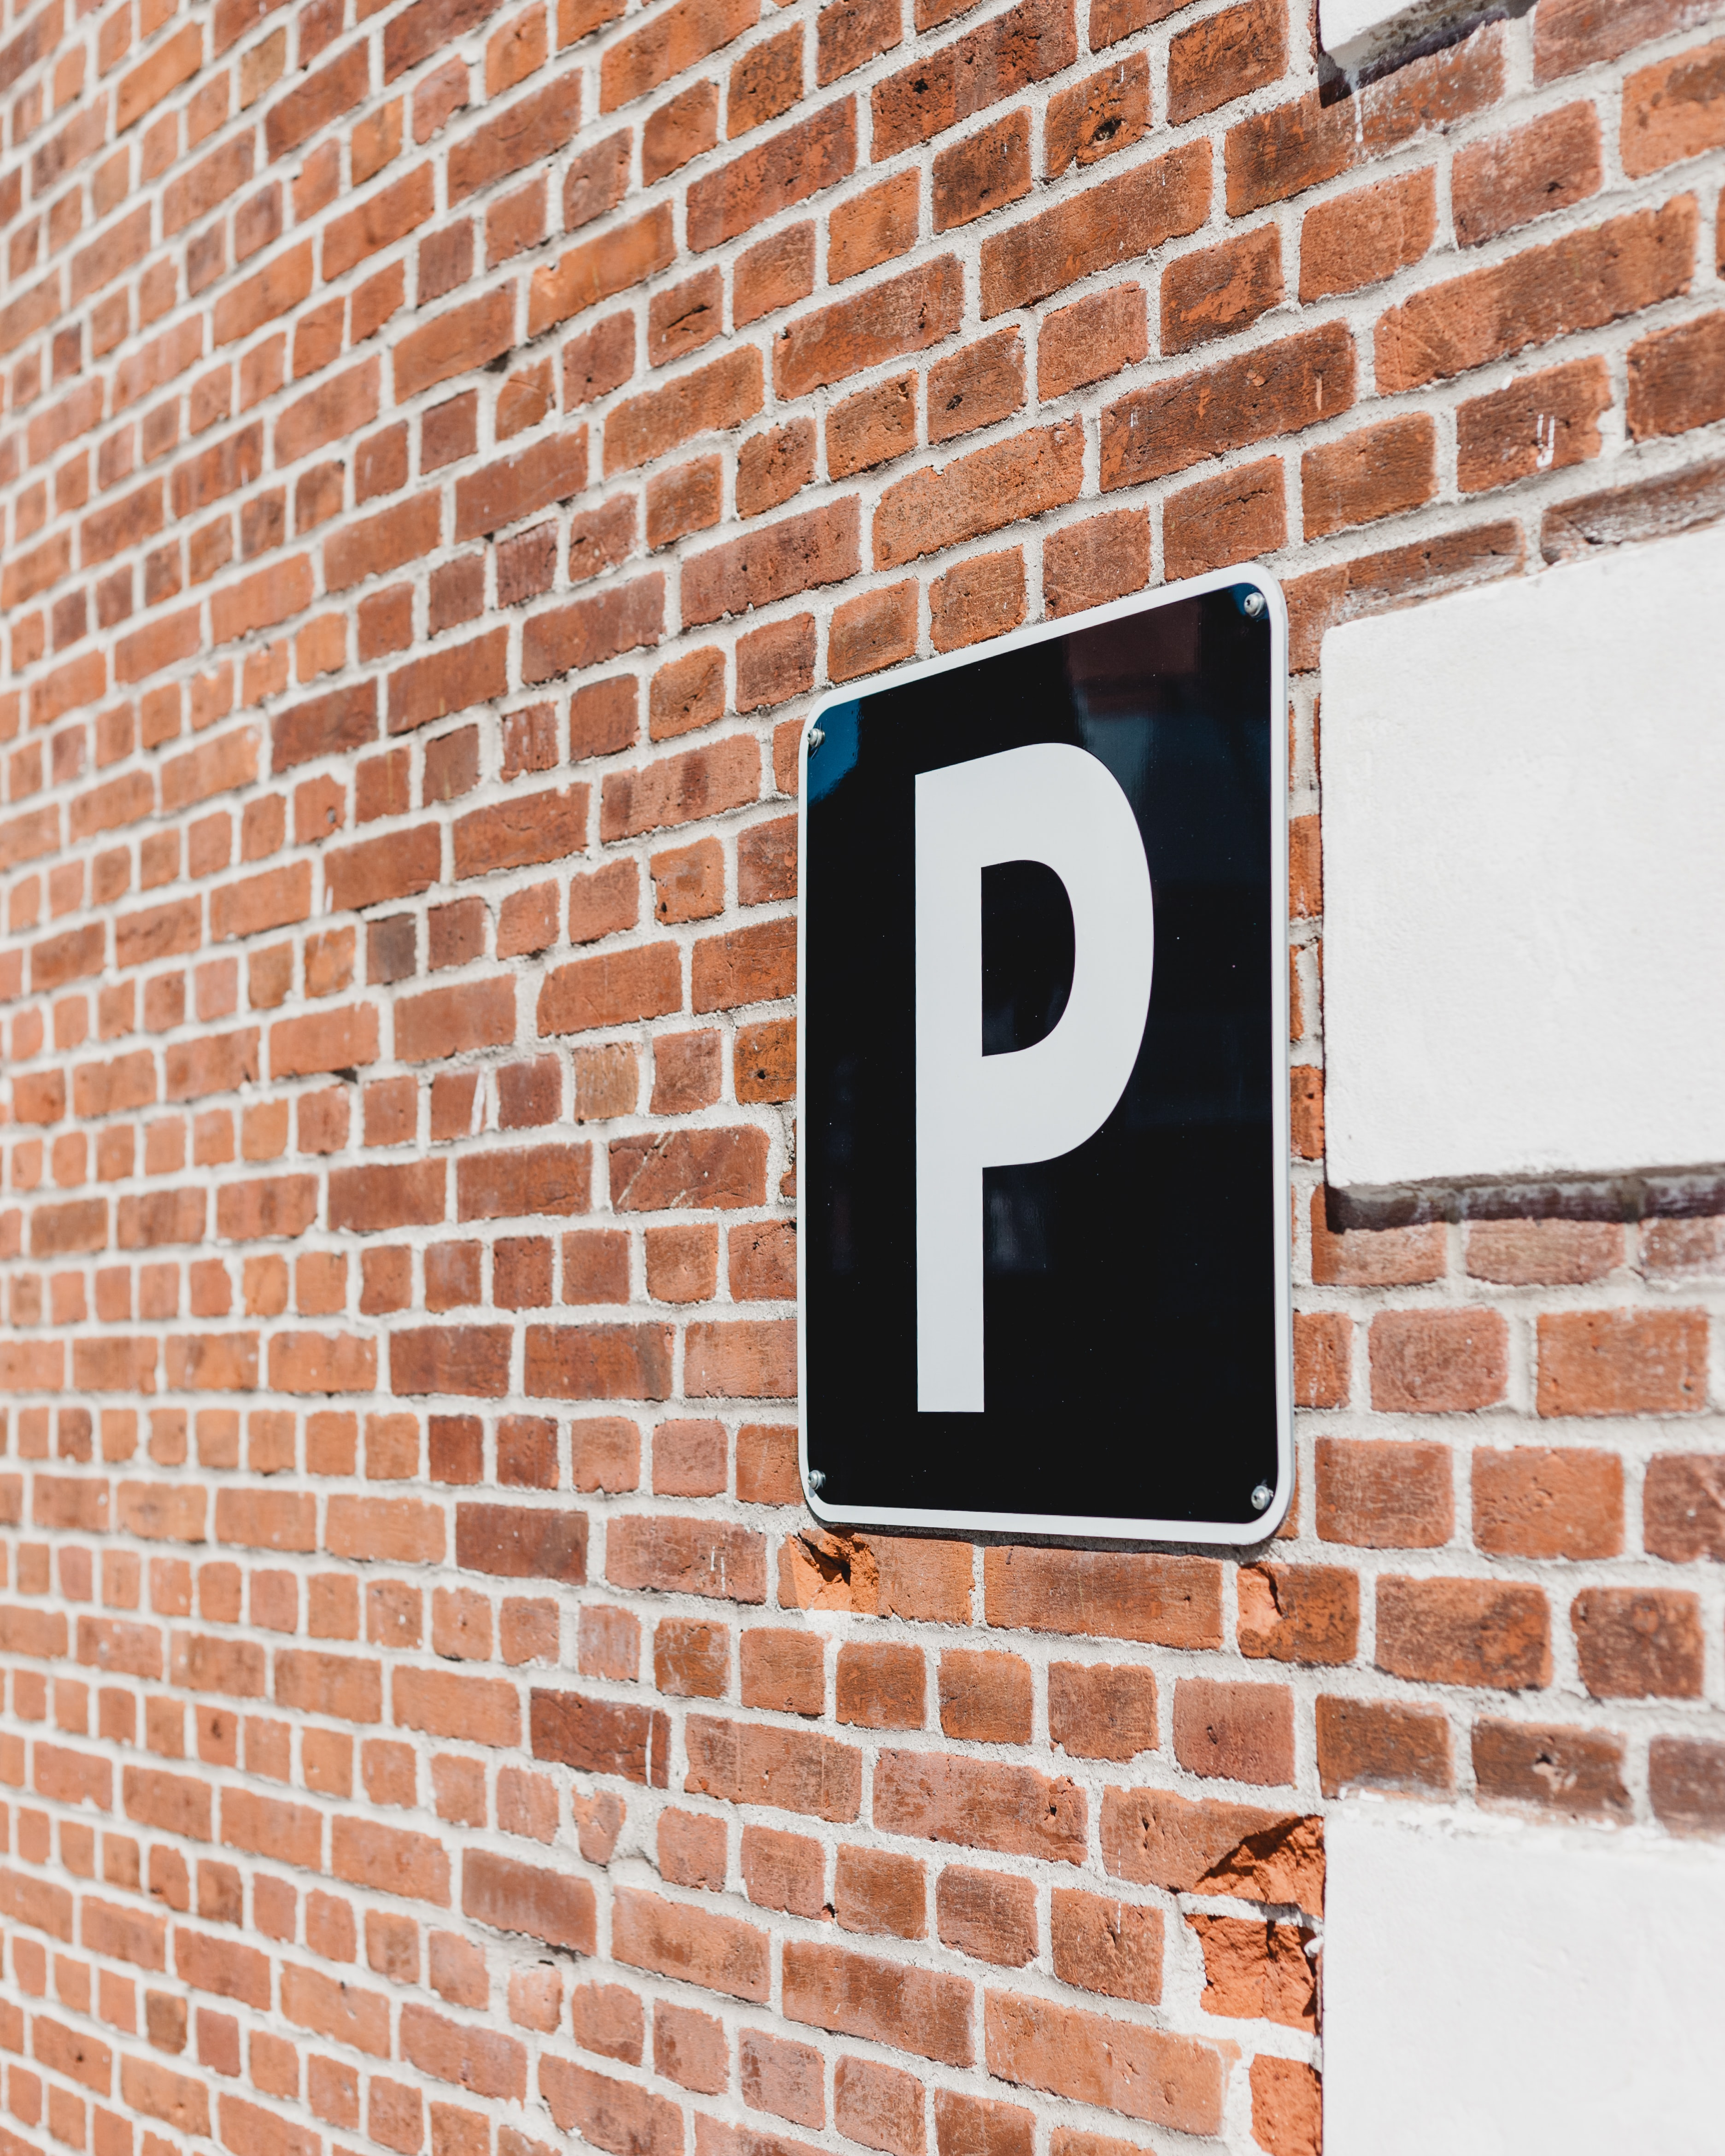 photo of parking signage